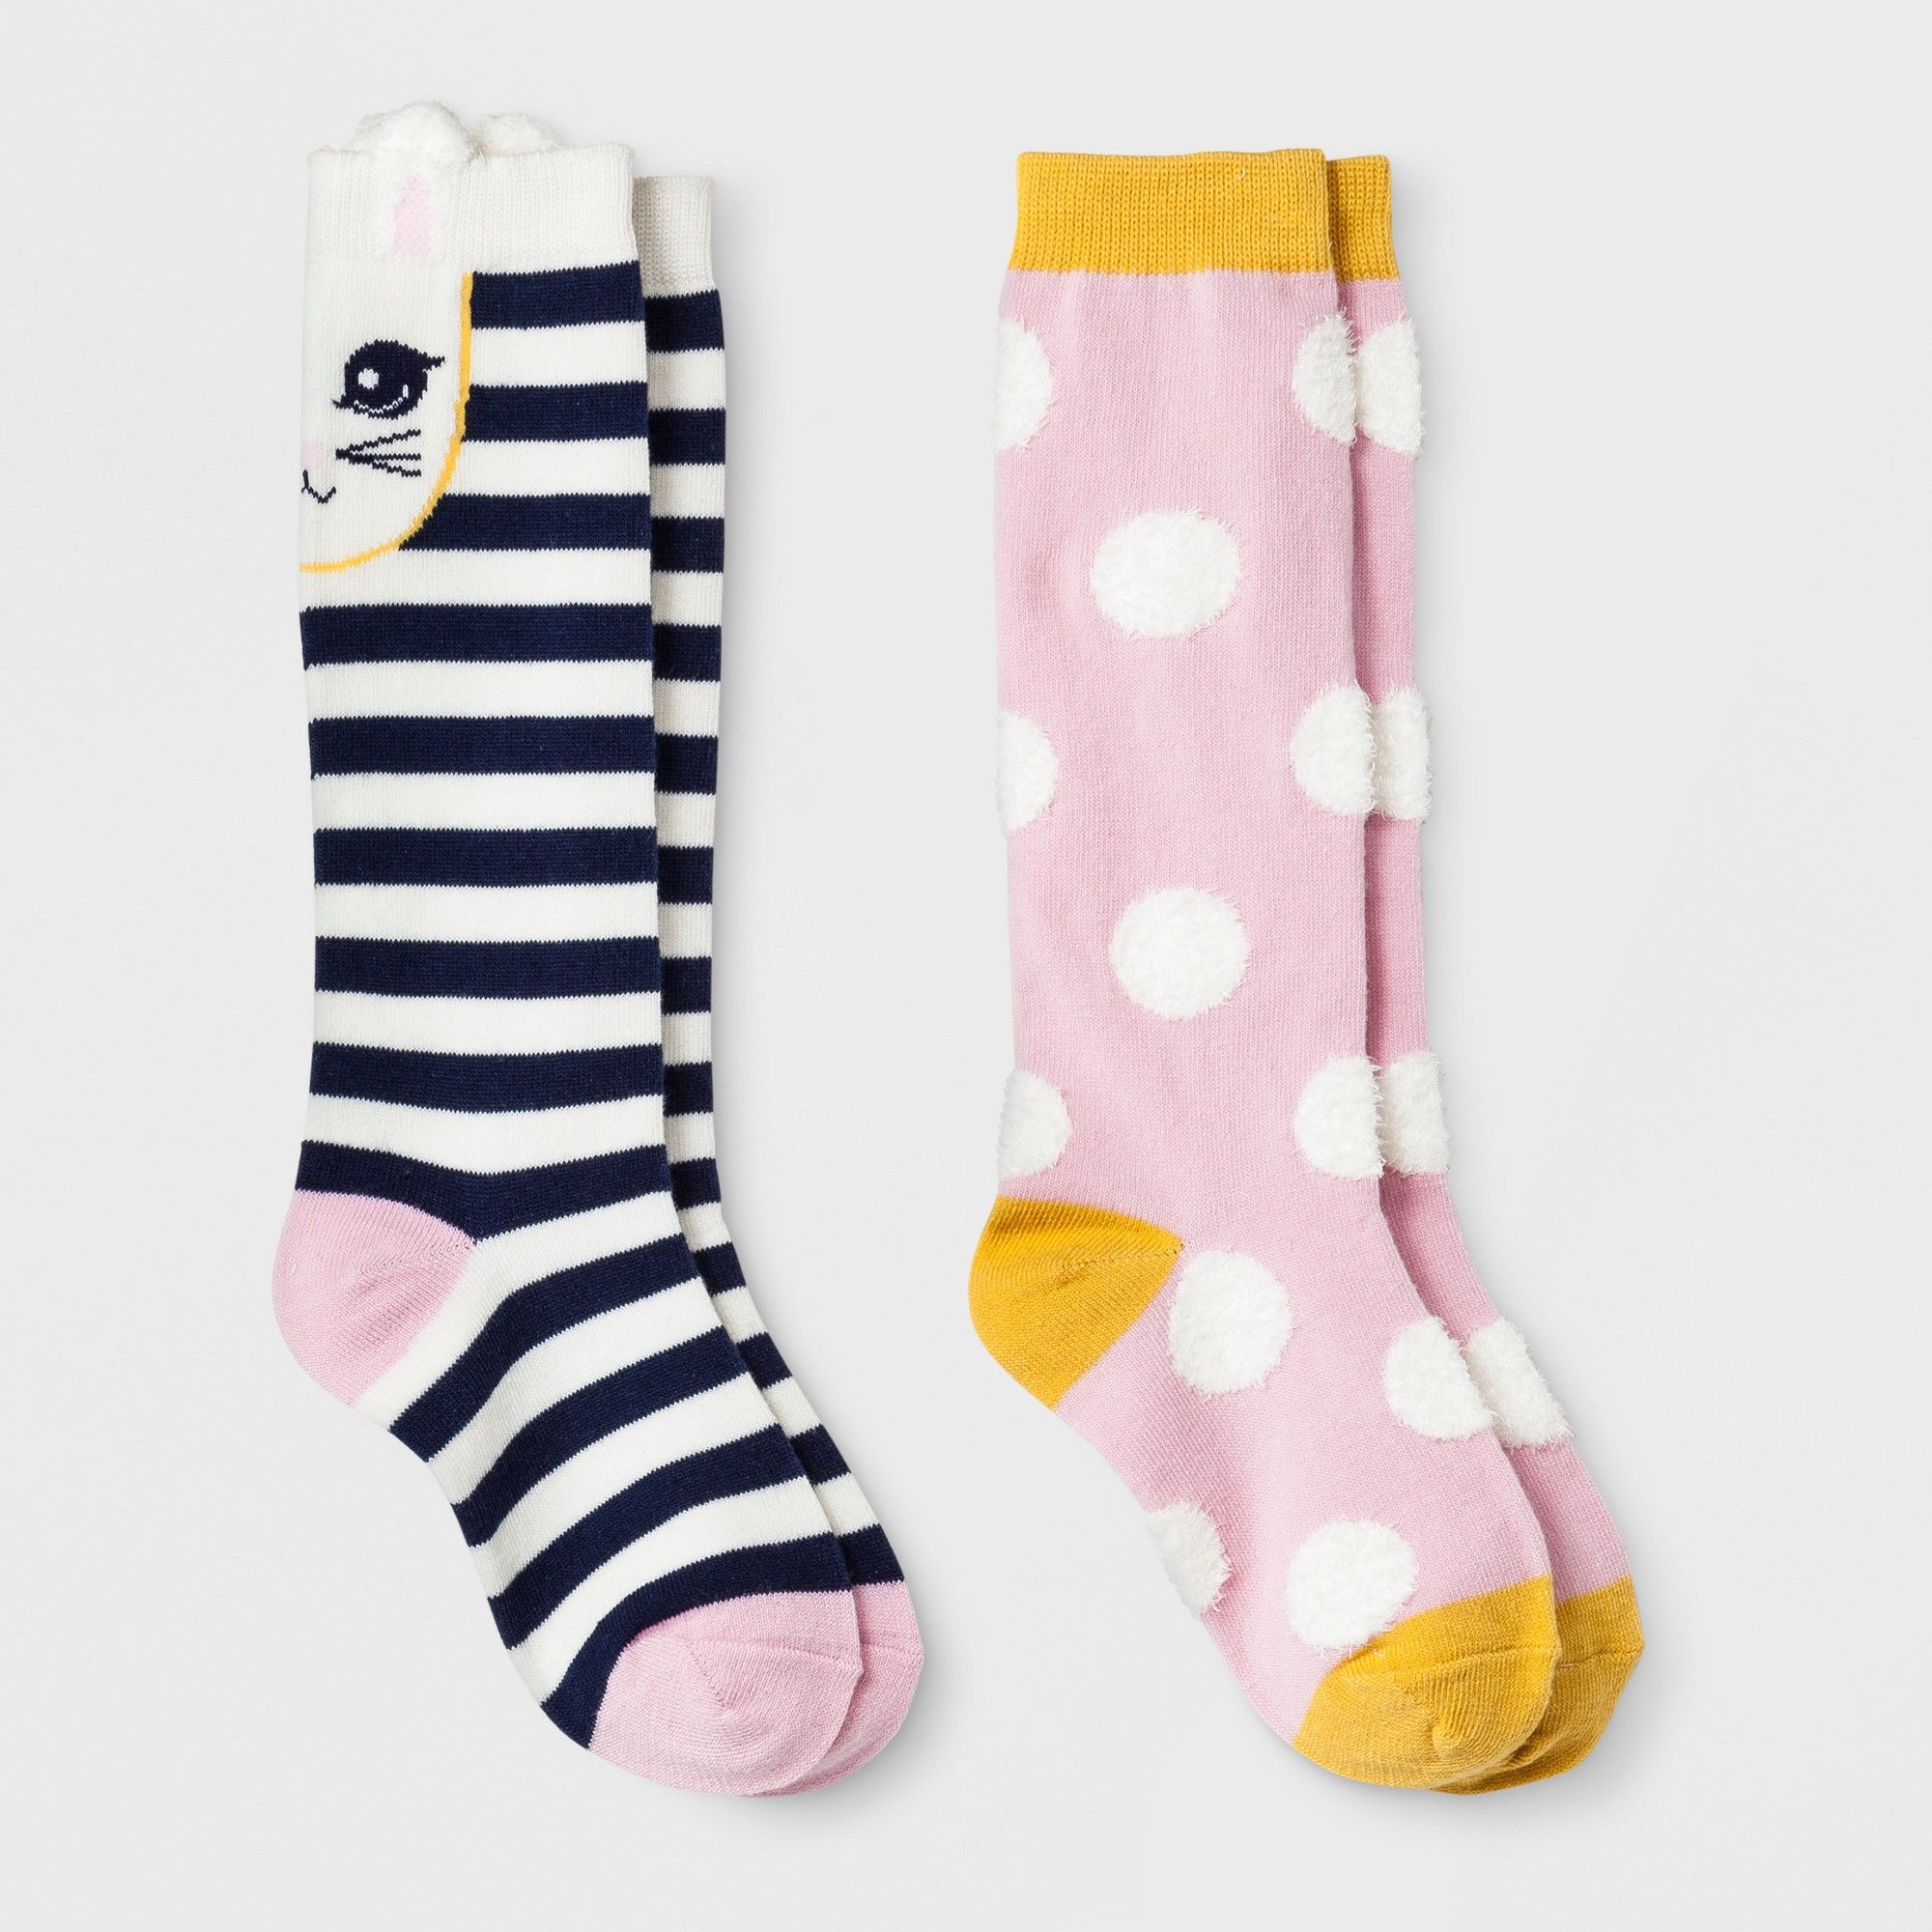 9f12993ca60 Girls  2pk Knee High Socks - Cat   Jack Blue S